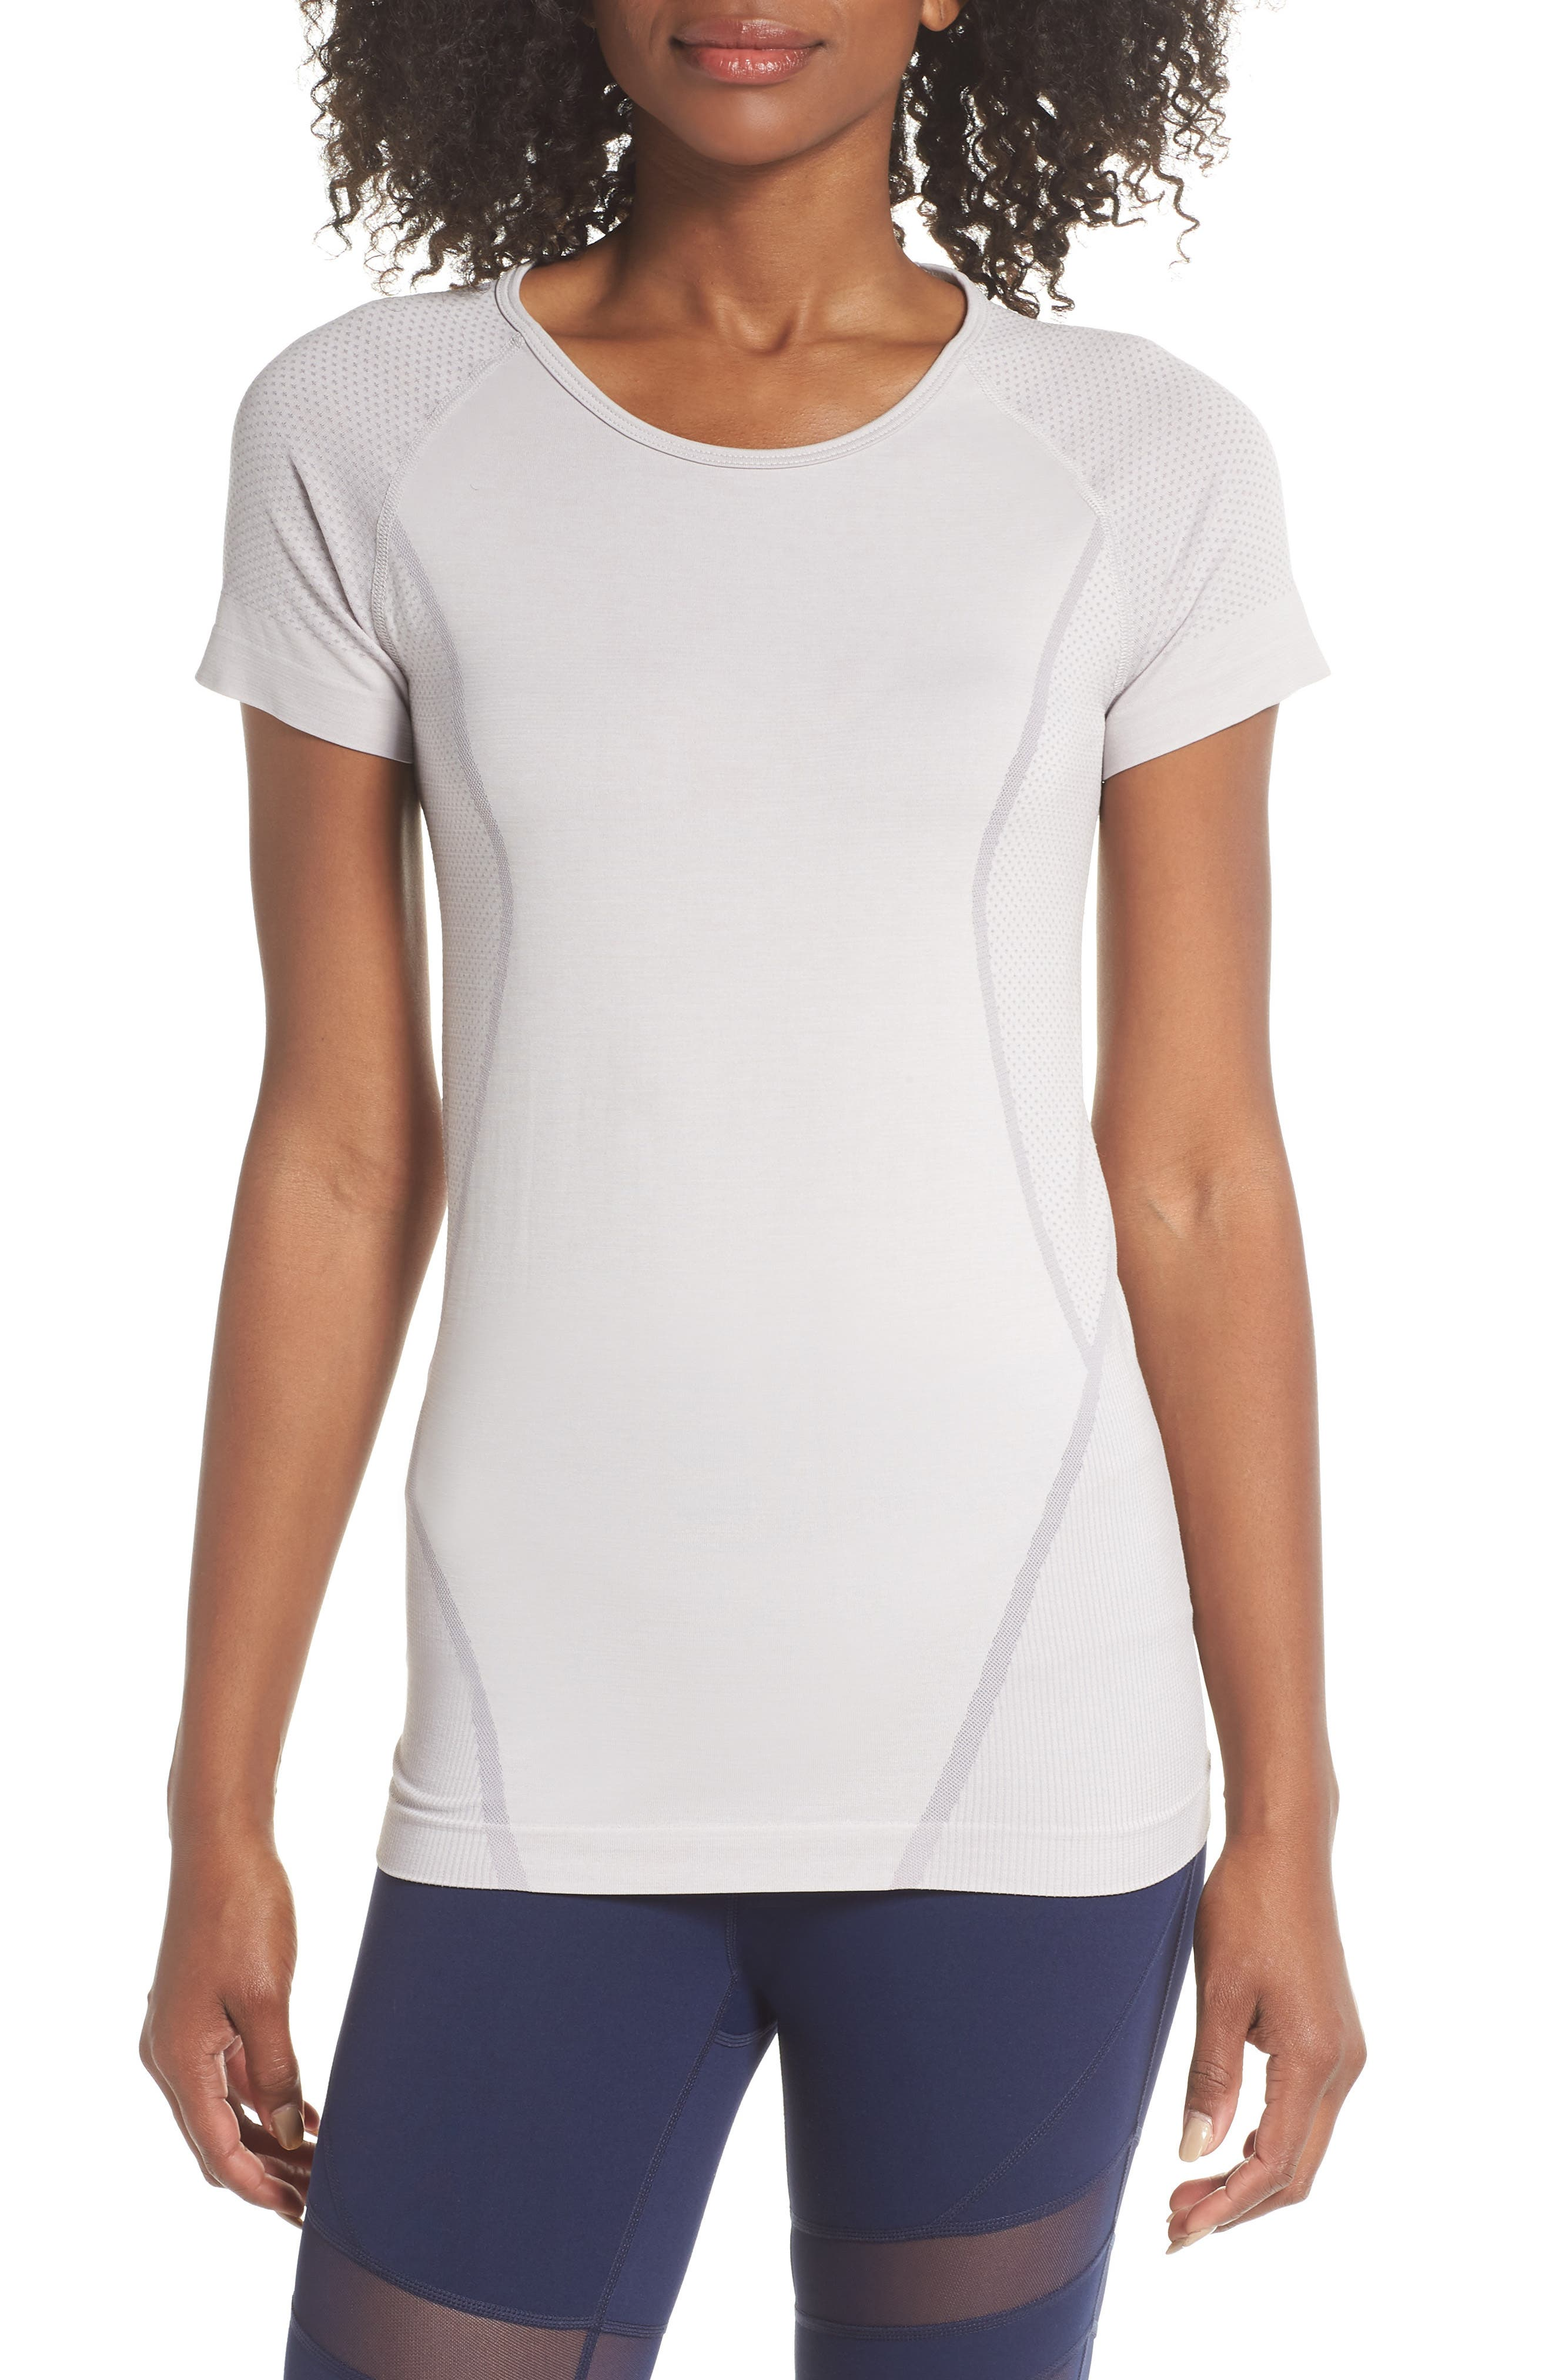 ZELLA Stand Out Seamless Training Tee, Main, color, 050